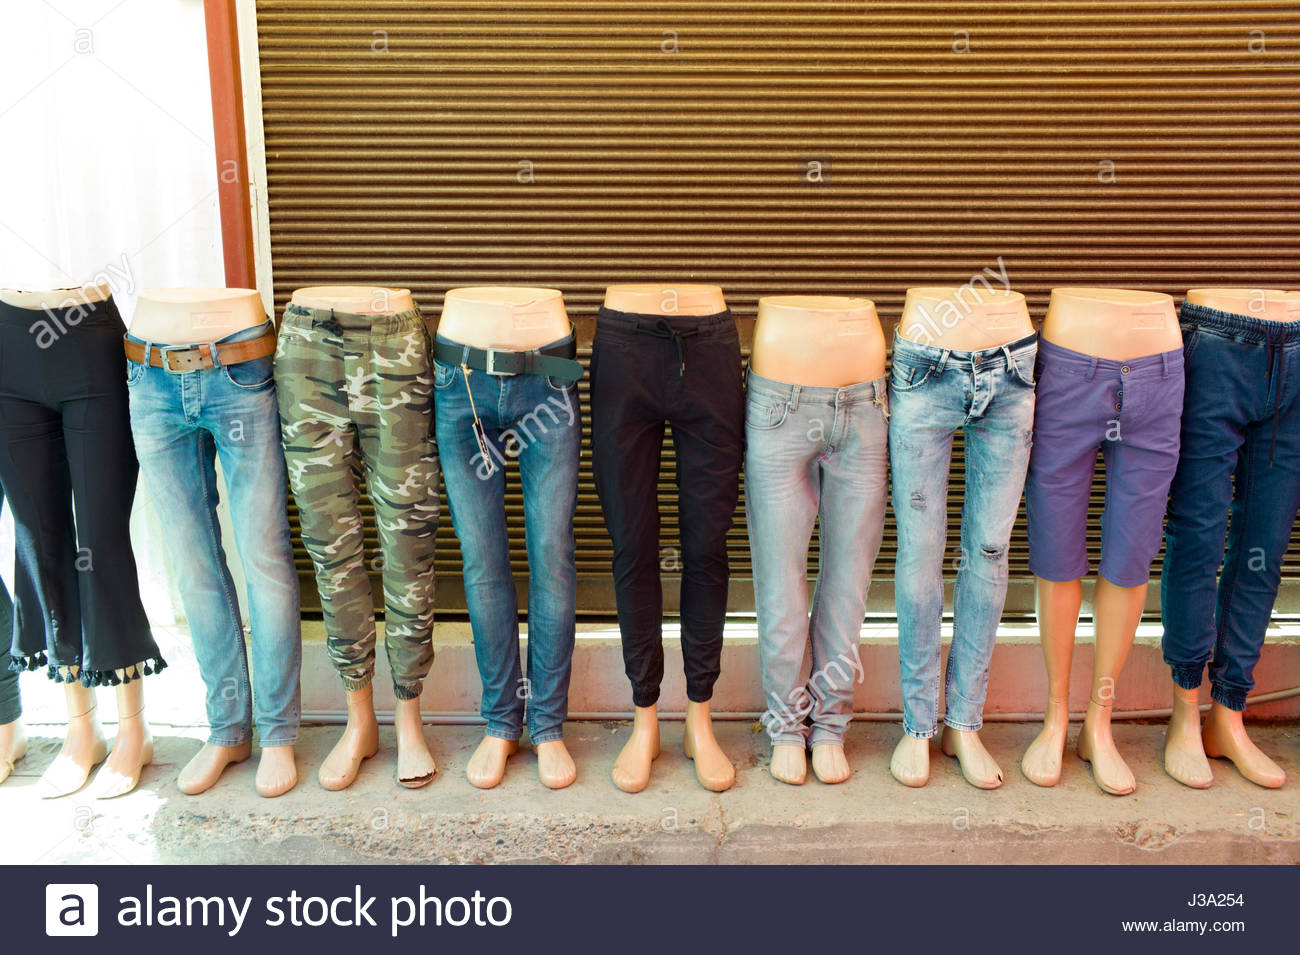 Dummy legs displaying jeans on a traditional street market stall in the Turkish quarter of Nicosia, Cyprus Stock Photo